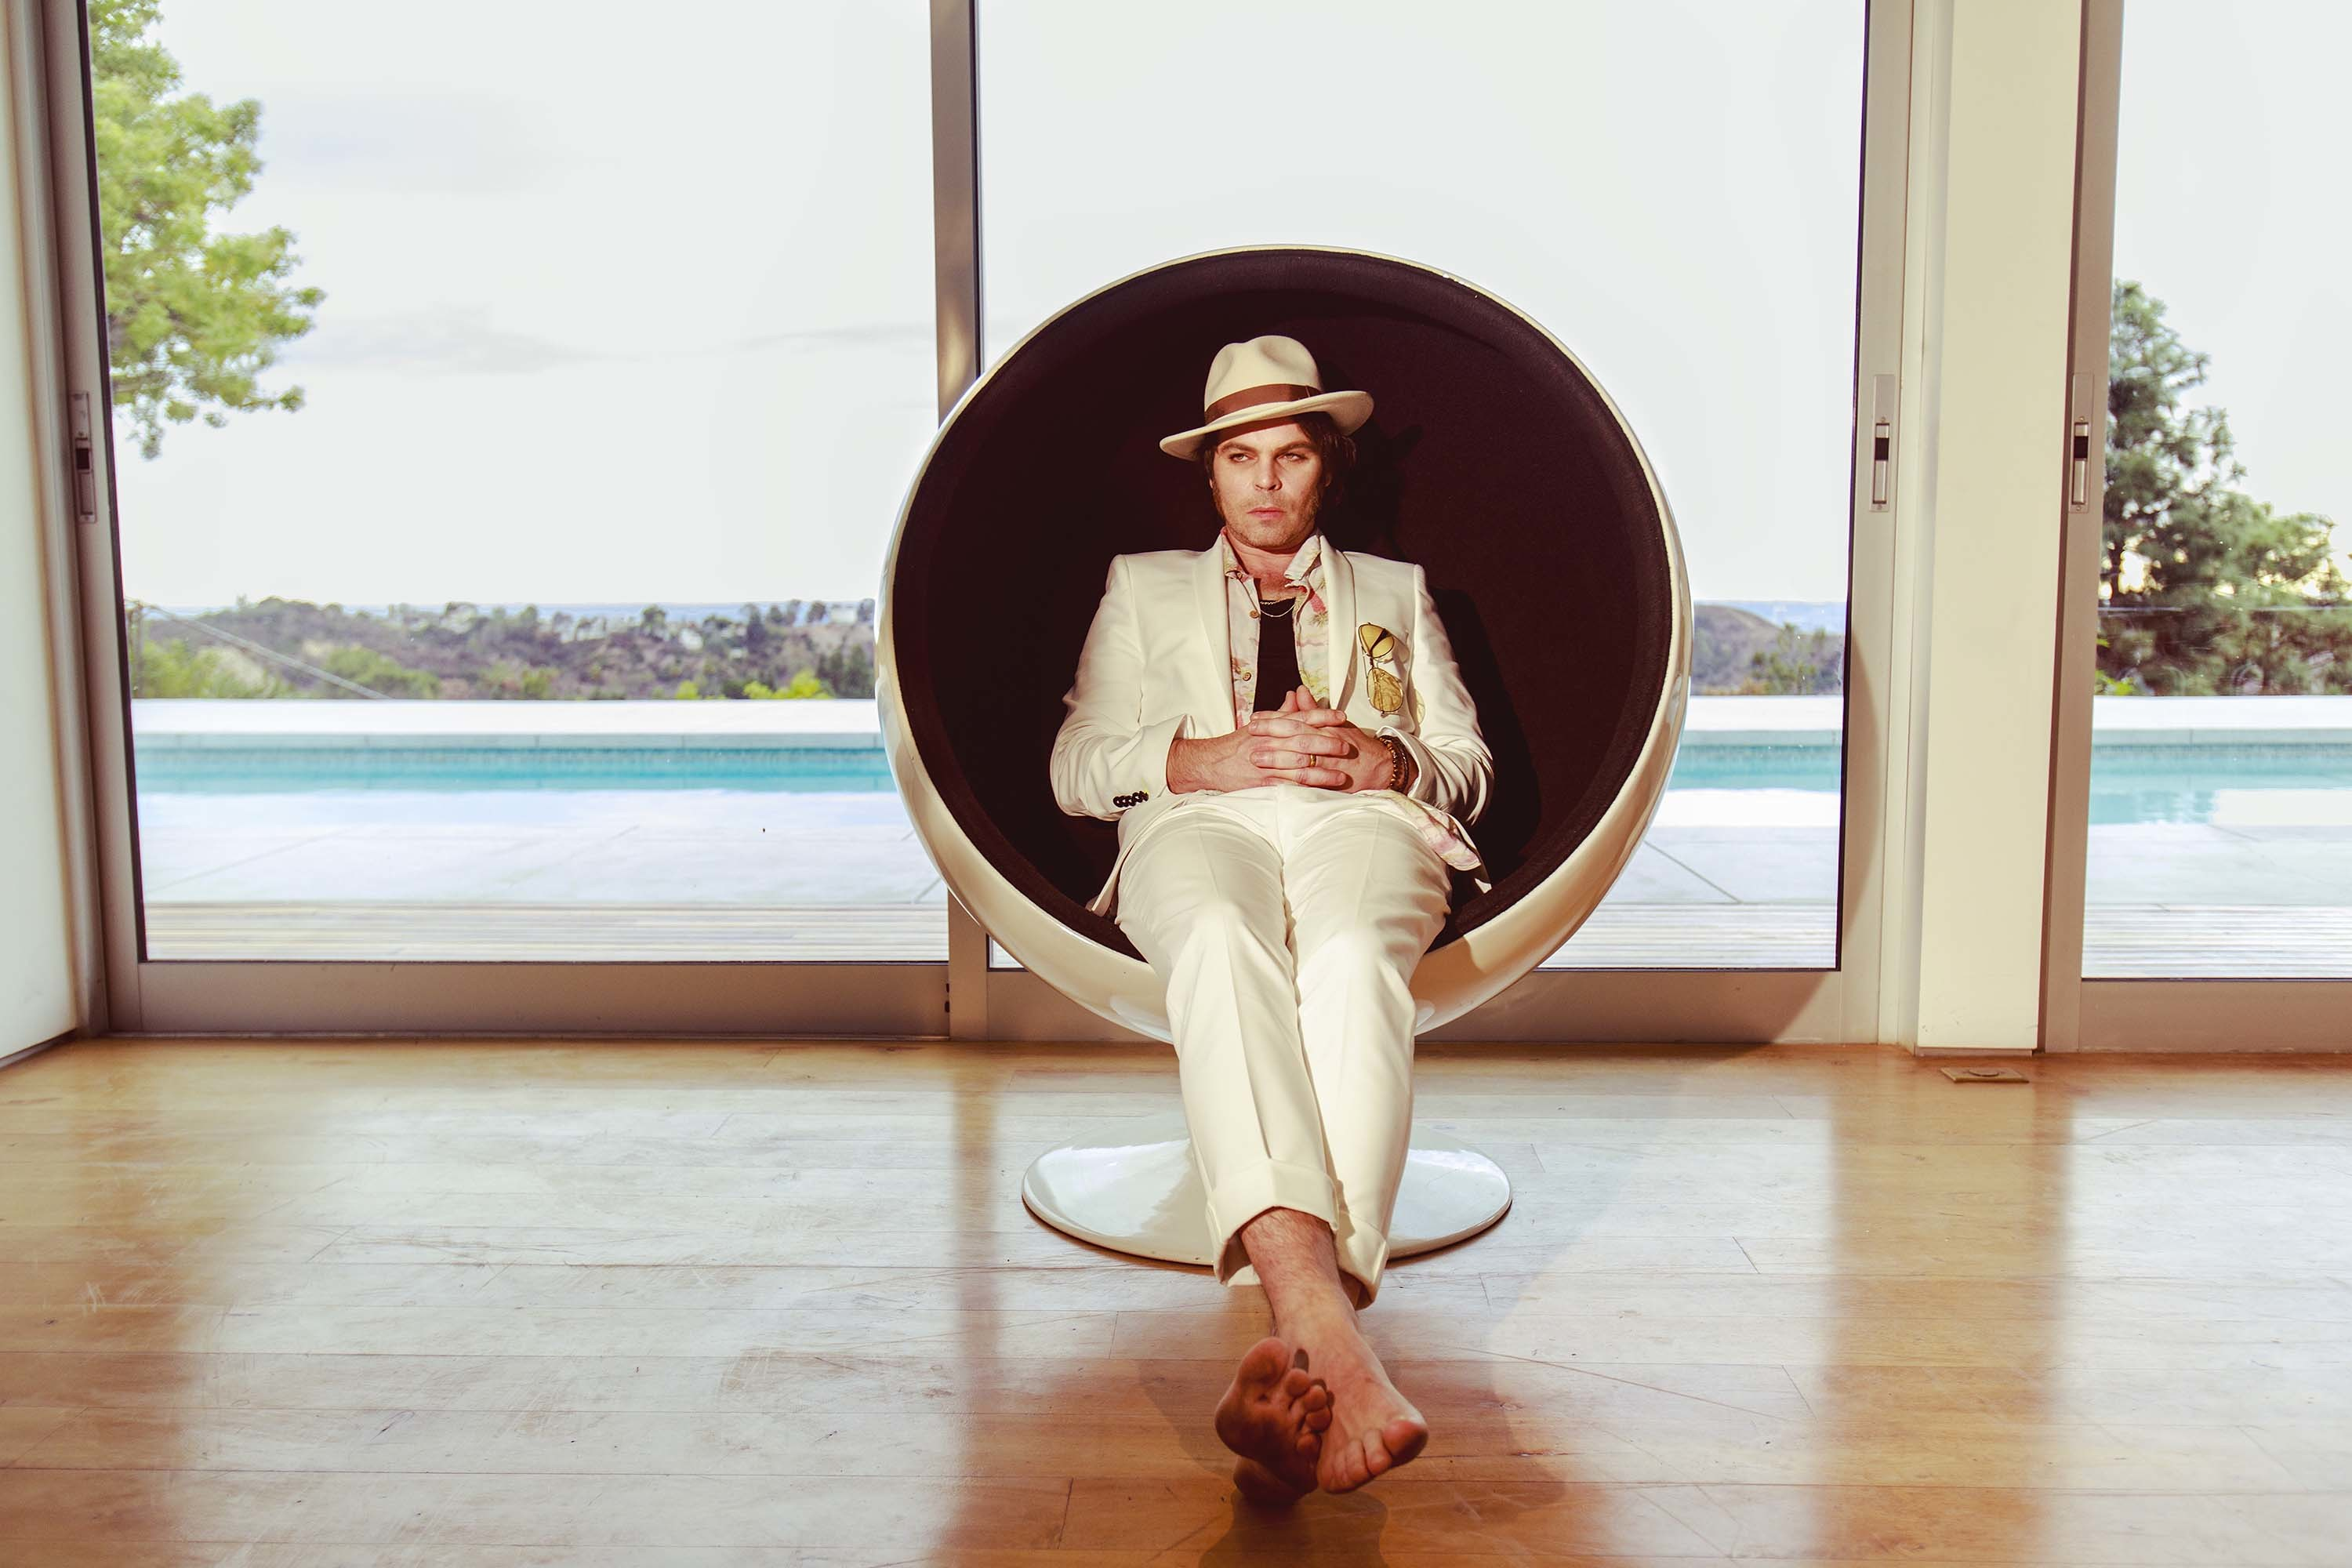 Gaz Coombes announces new album 'World's Strongest Man'